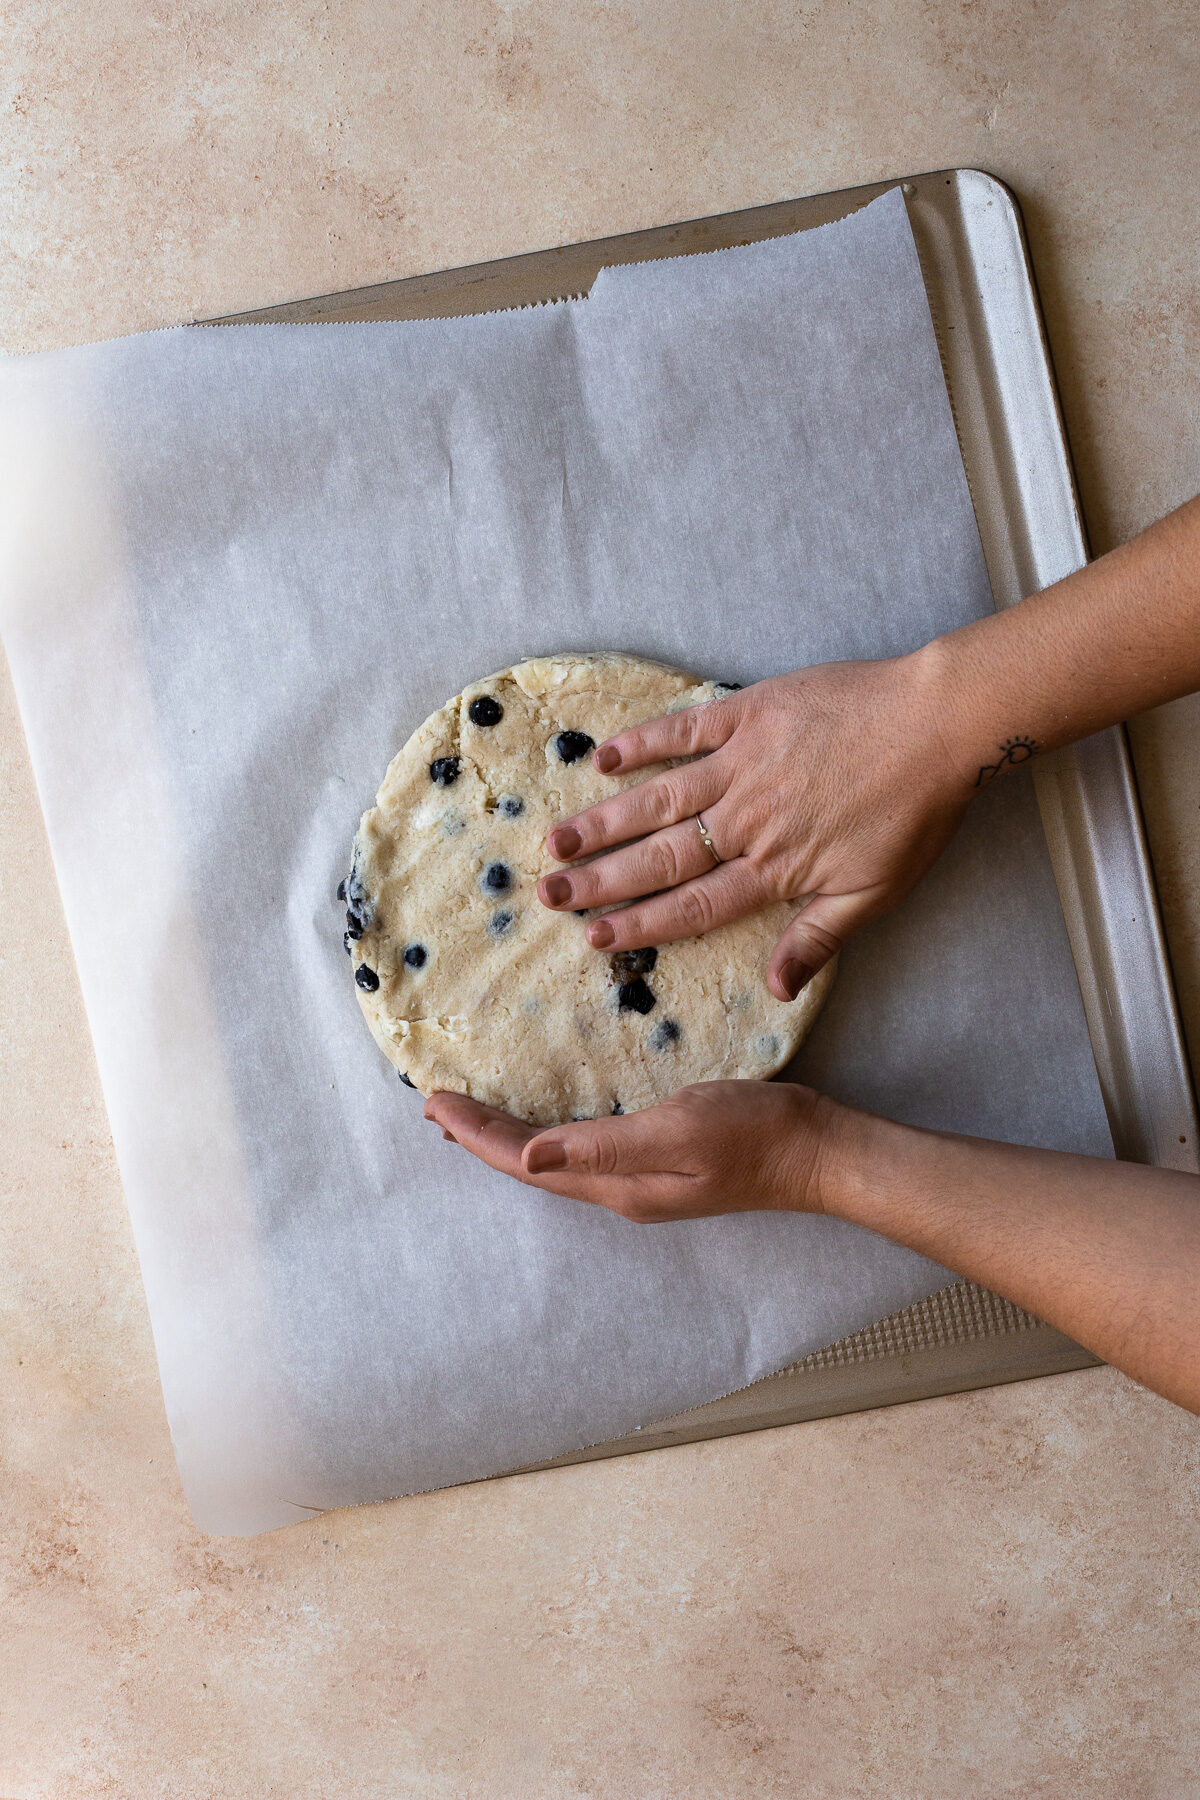 Scone dough being patted into a disc on a baking sheet.